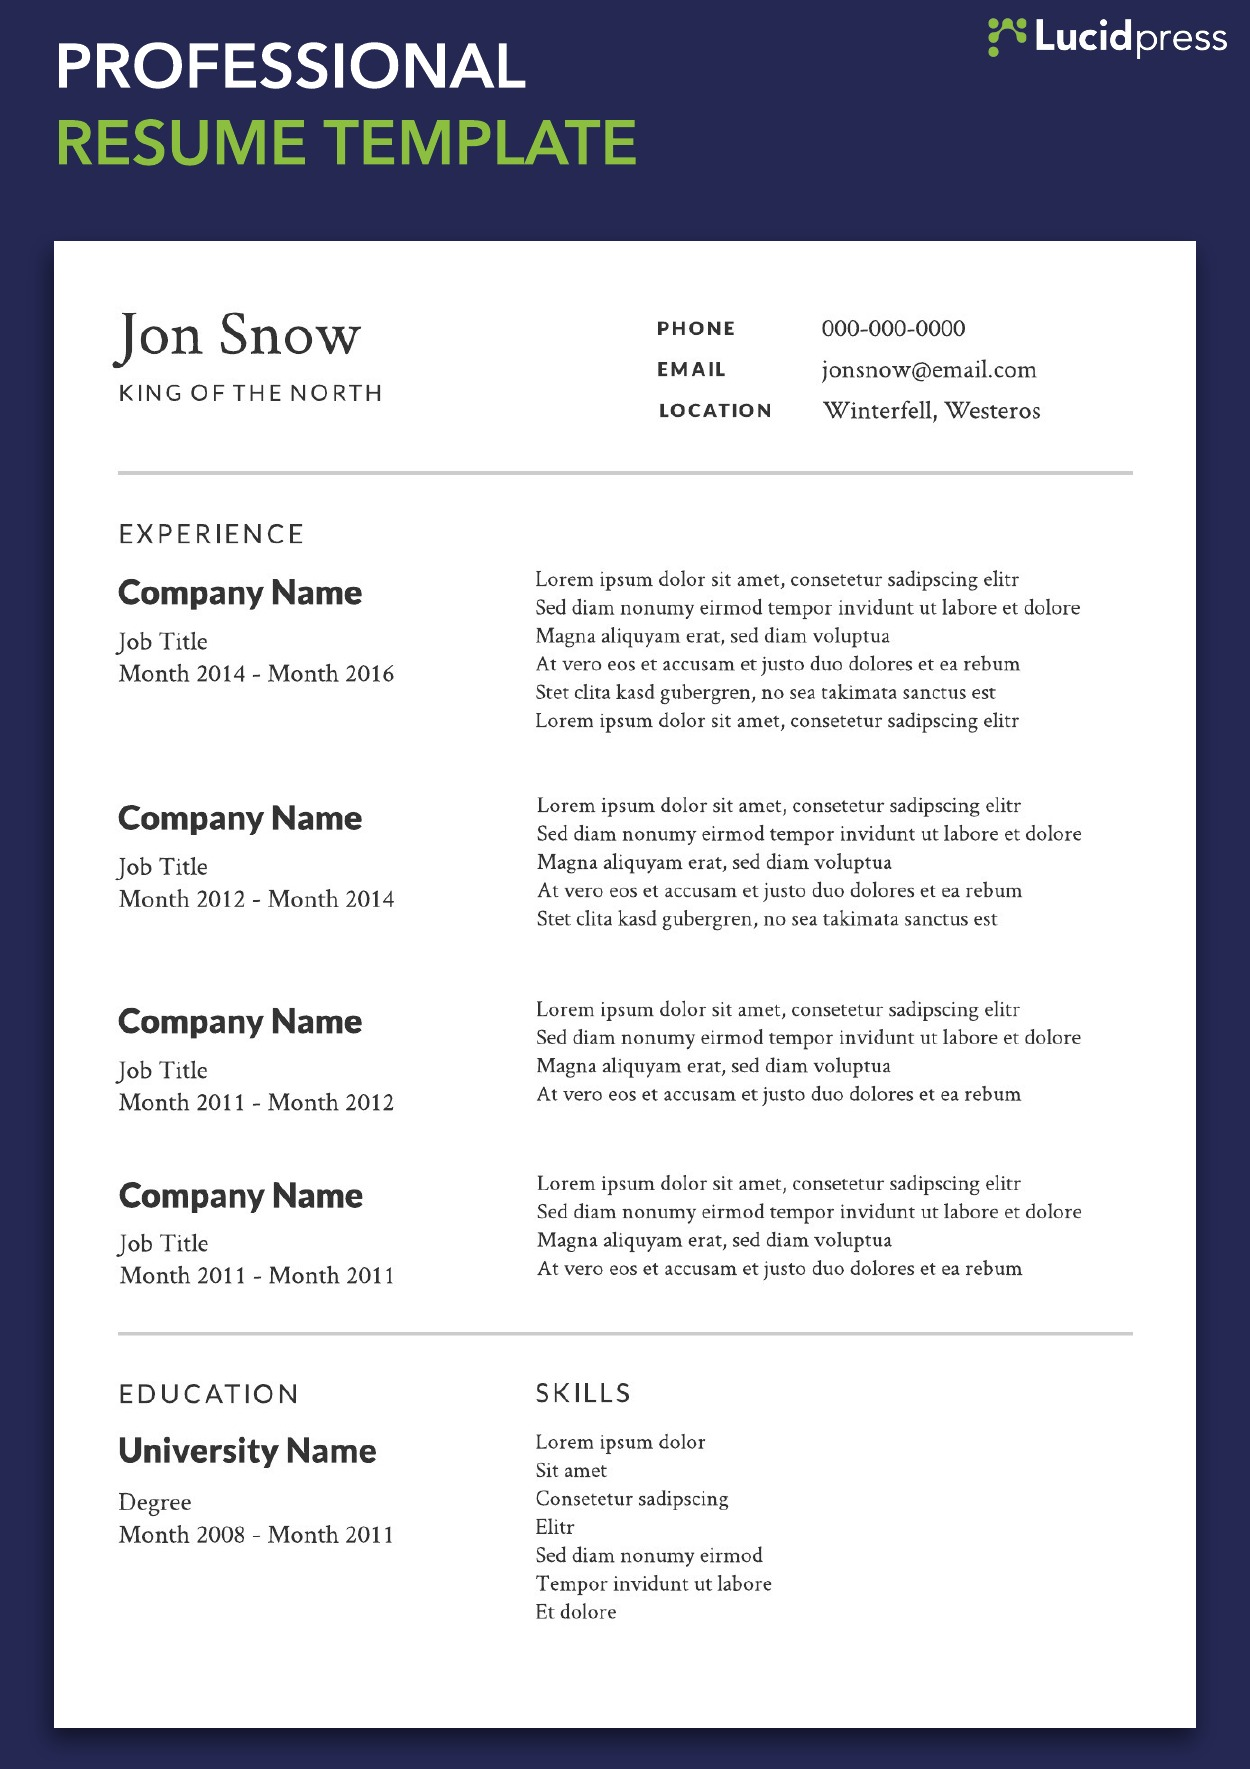 your resume formats guide for lucidpress professional layout template contoh jurnal Resume Professional Resume Layout